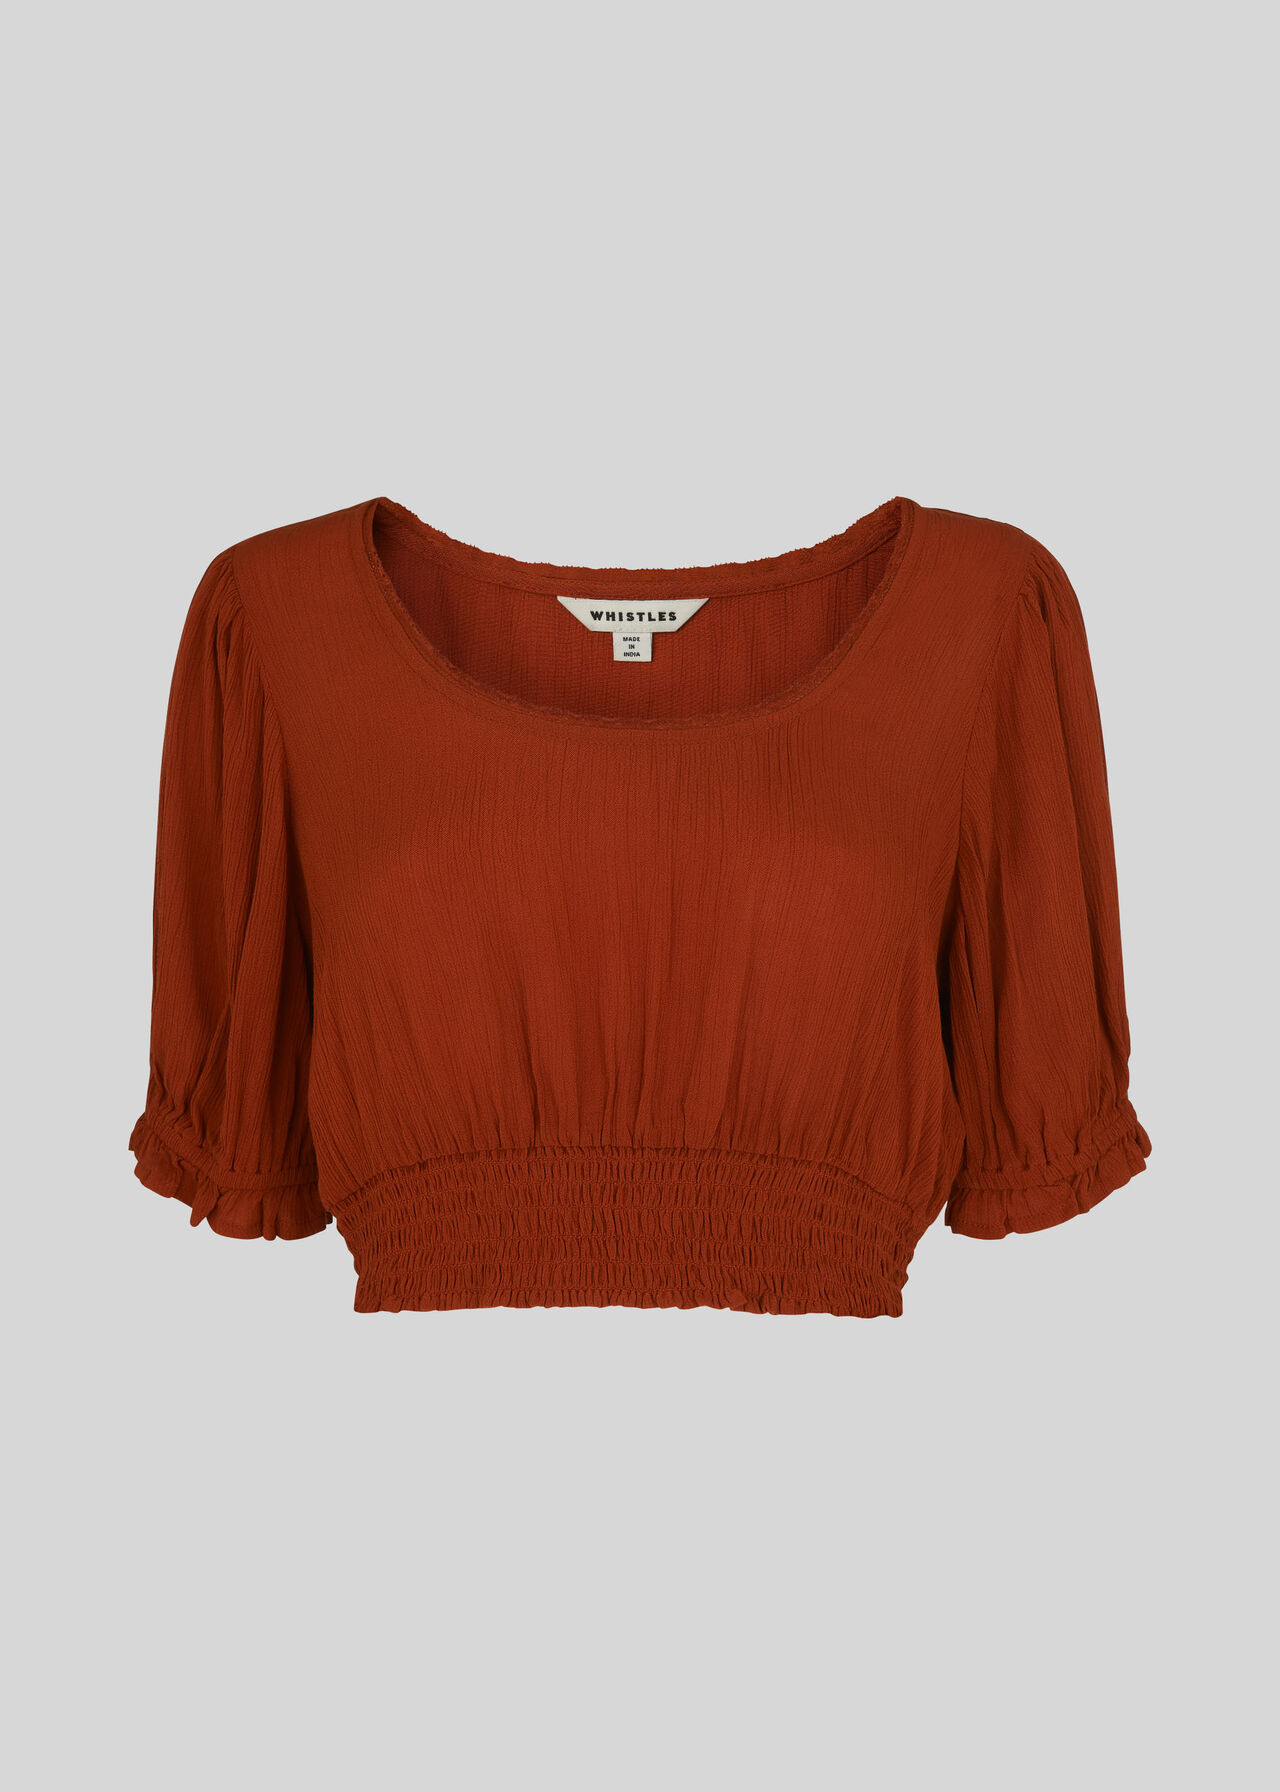 Textured Crop Top Rust